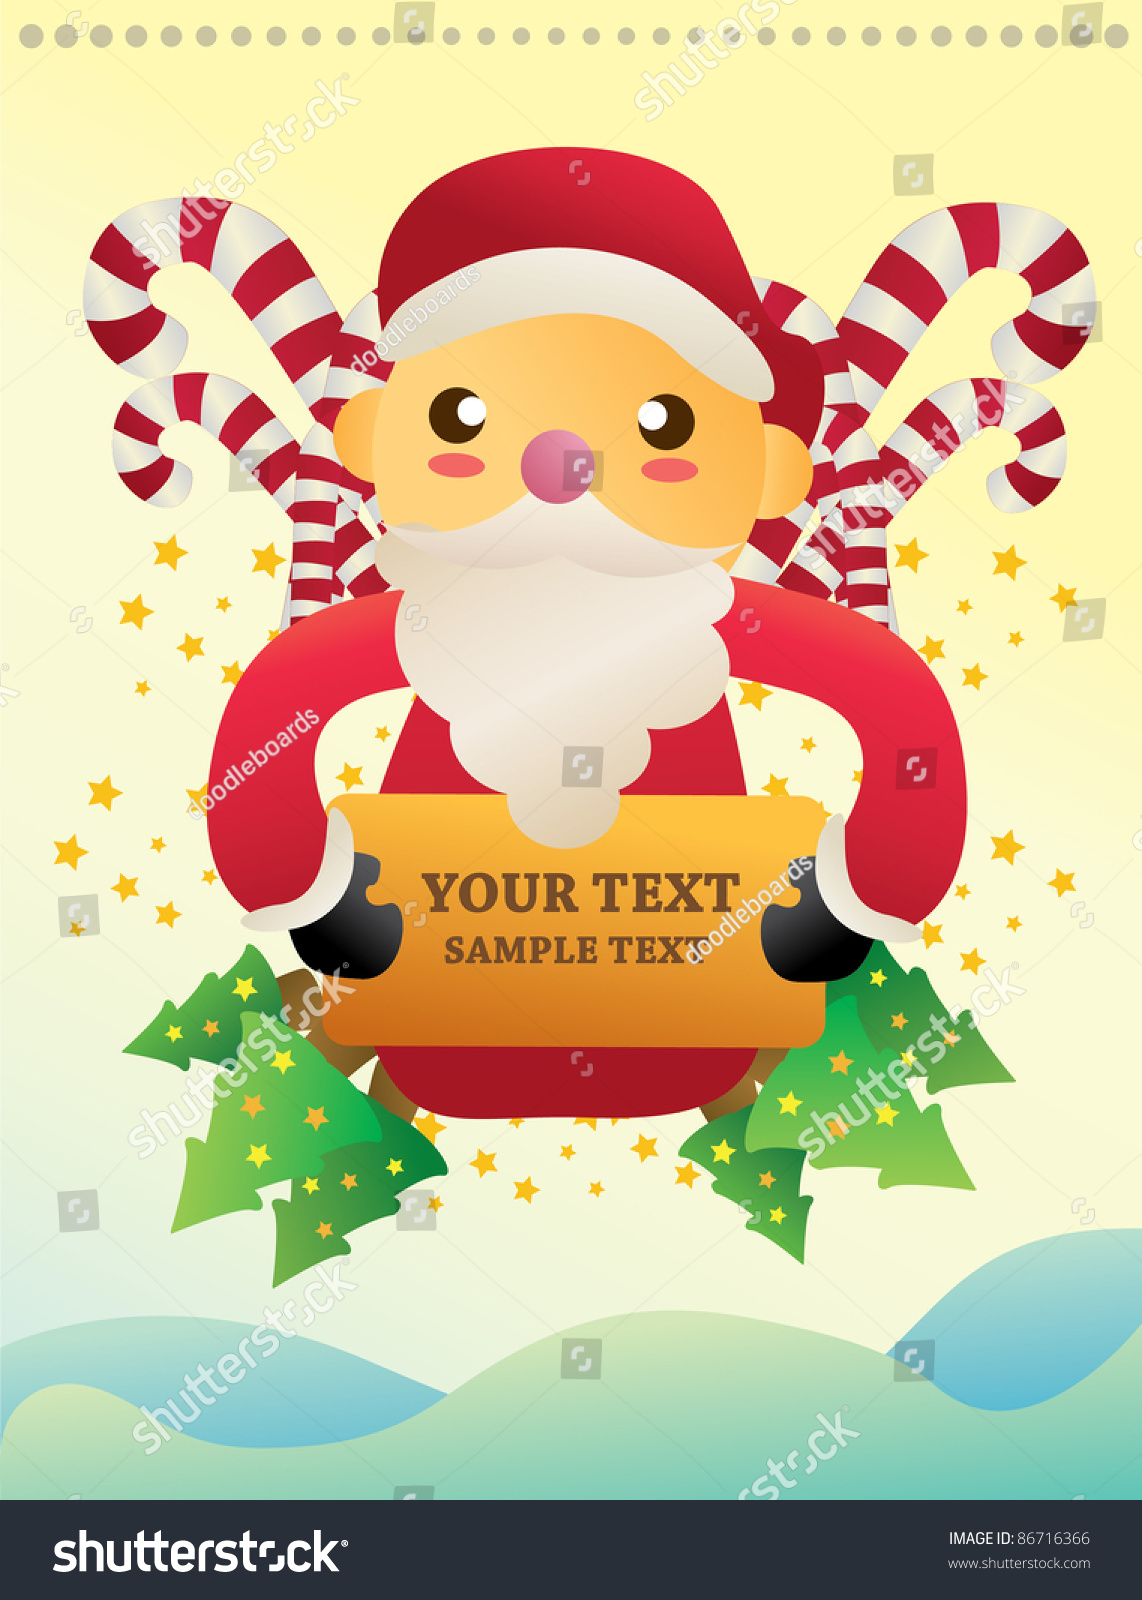 Christmas Note And You Can Put Your Text On The Banner Stock Vector Illustration 86716366 ...